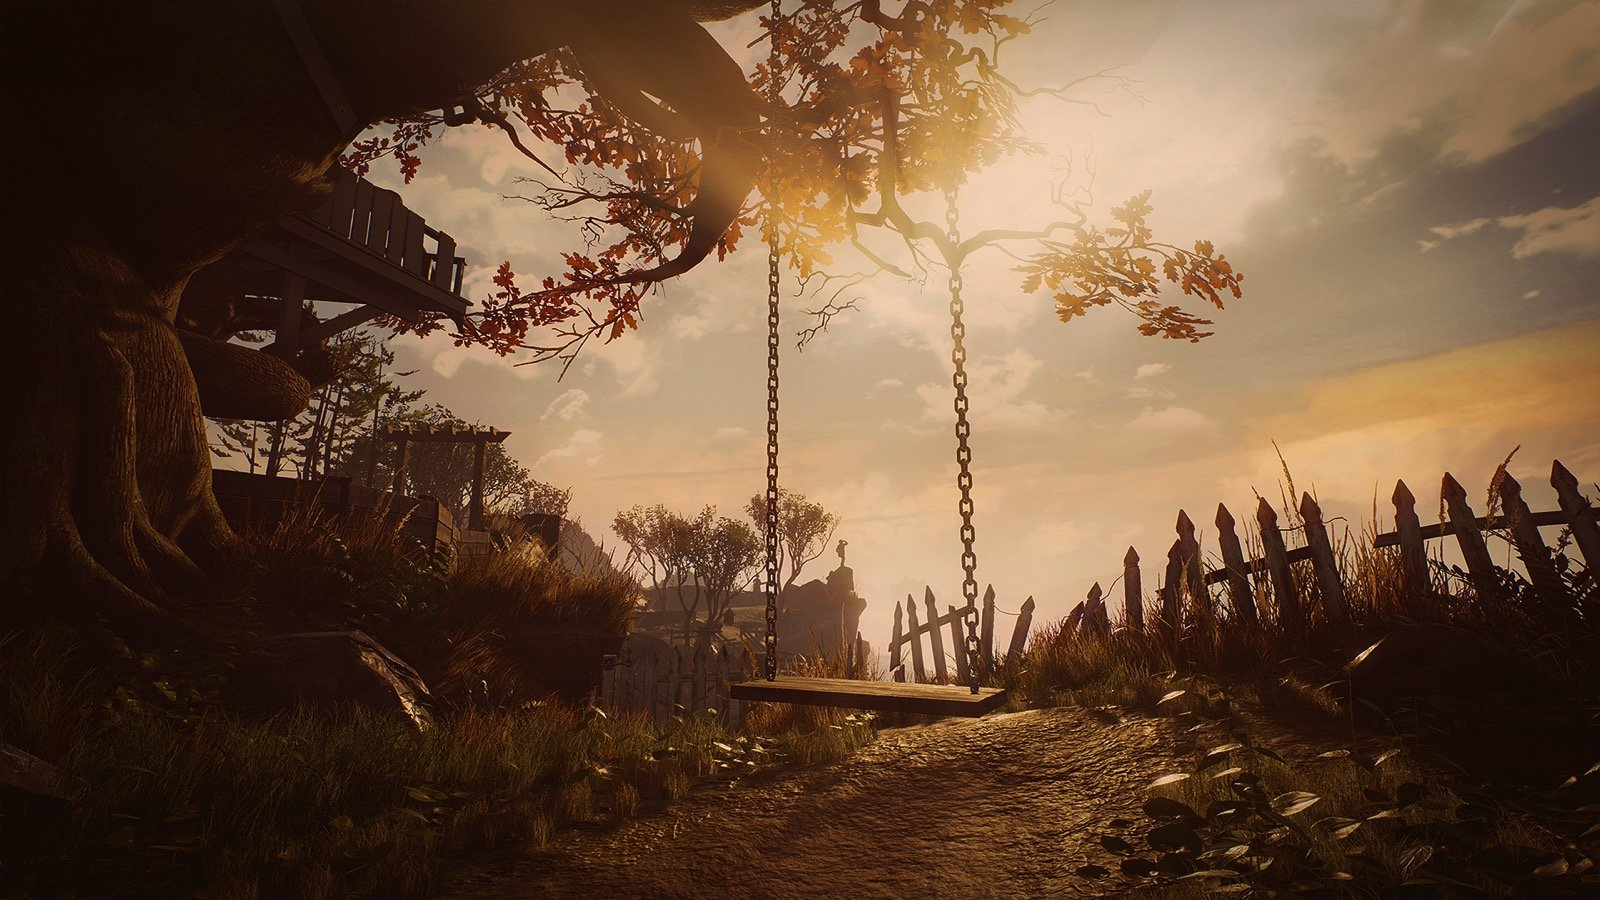 The 'What Remains of Edith Finch is free on PS Plus so I finally played it' Review